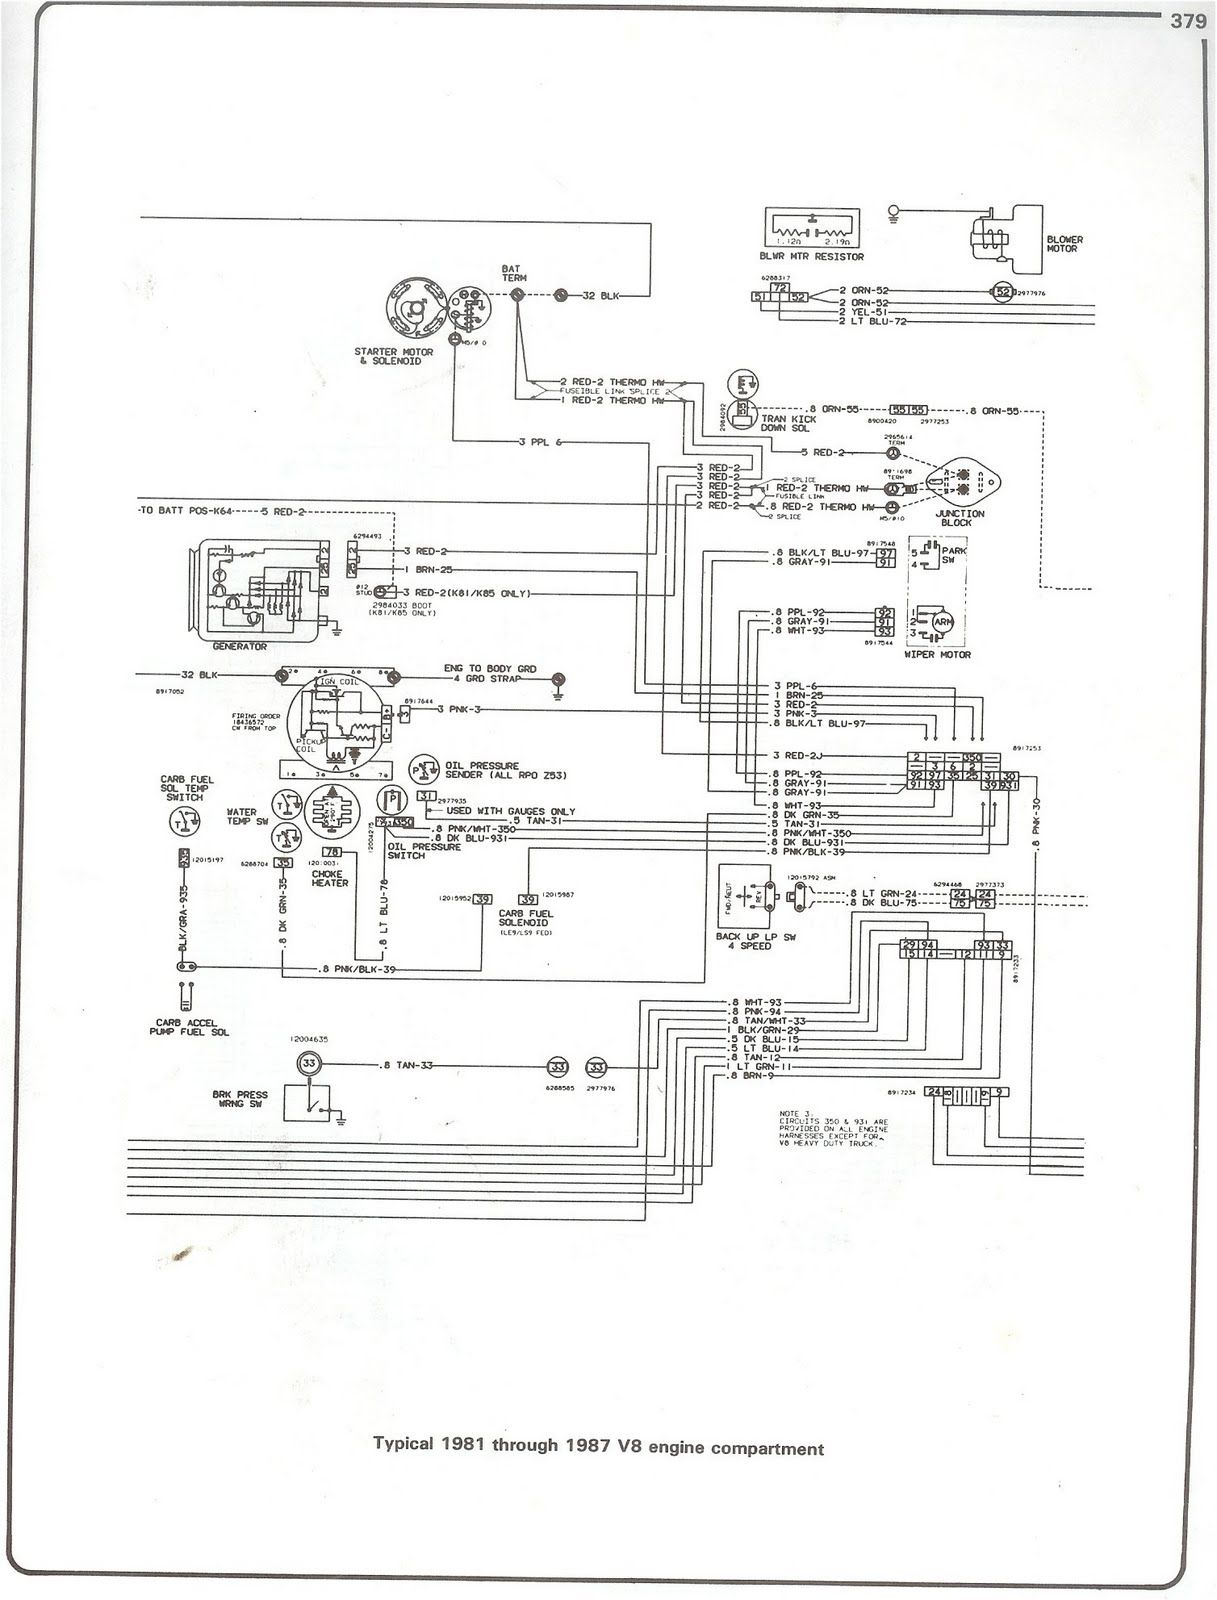 This Is Engine Compartment Wiring Diagram For 1981 Trough 1987 Chevrolet V8 Truck Description From Autowiringdiagra 1979 Chevy Truck Chevy Trucks Truck Engine